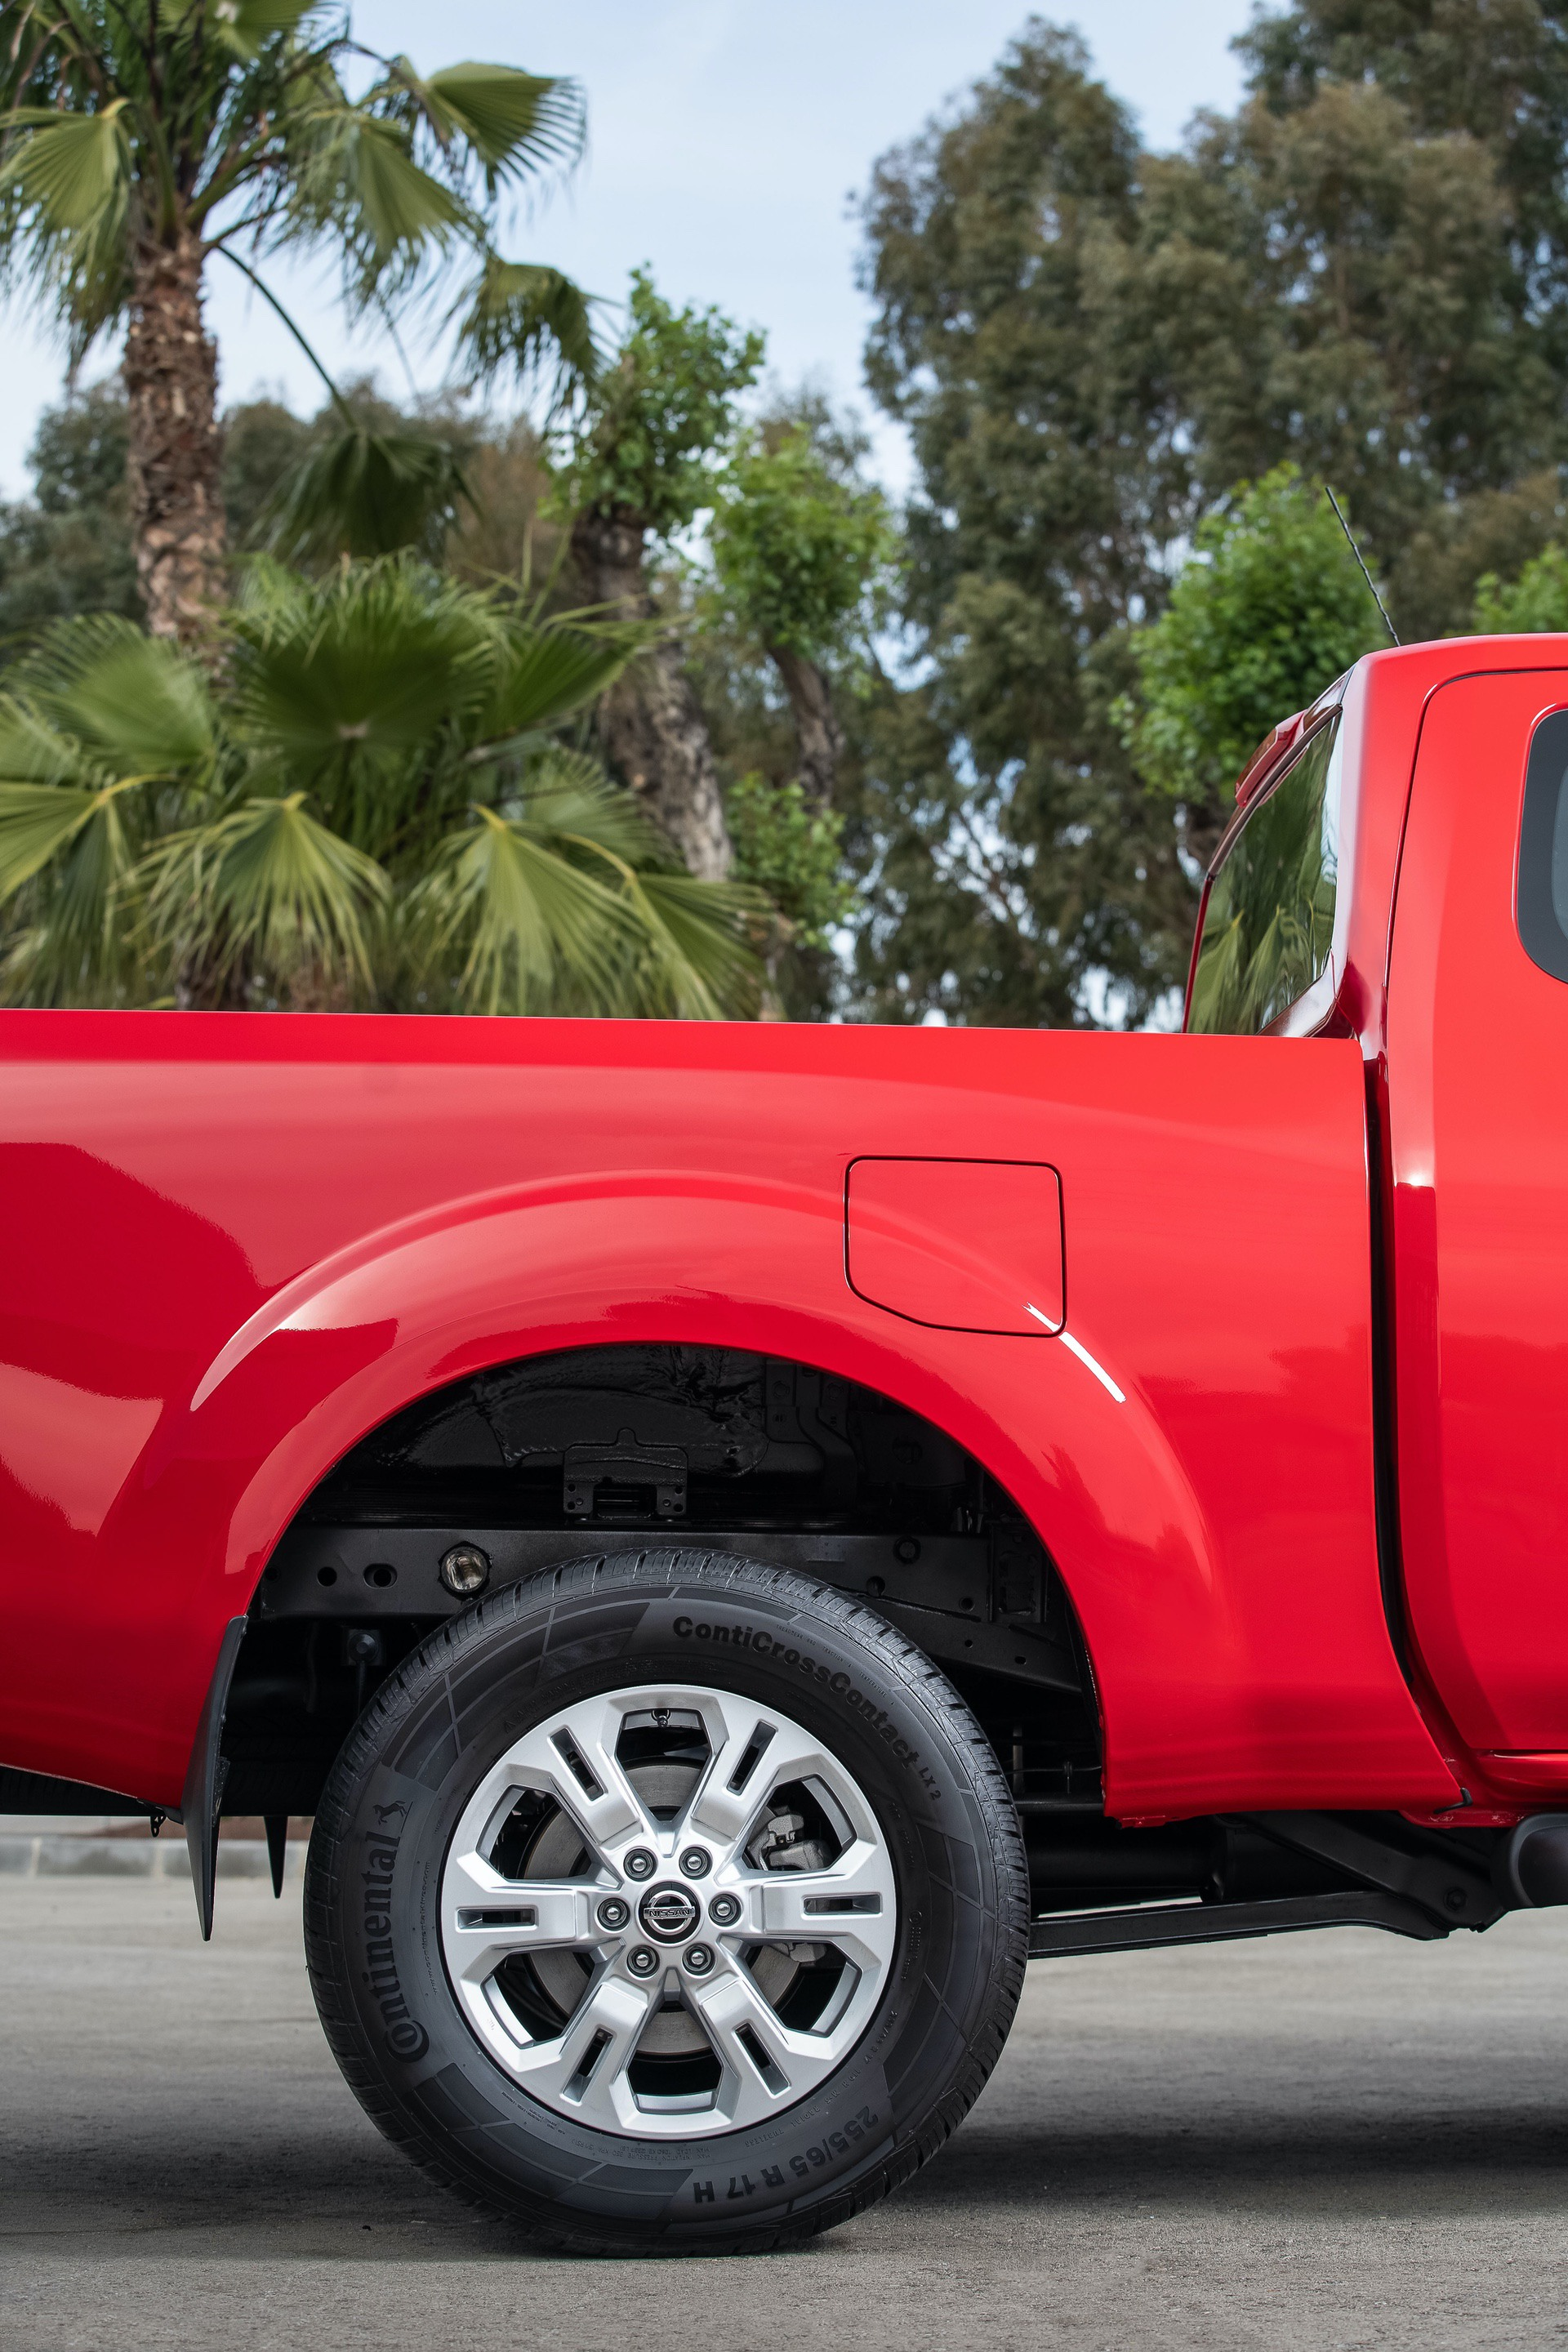 Nissan-Navara-King-Cab-Red-Rear-wheels-2